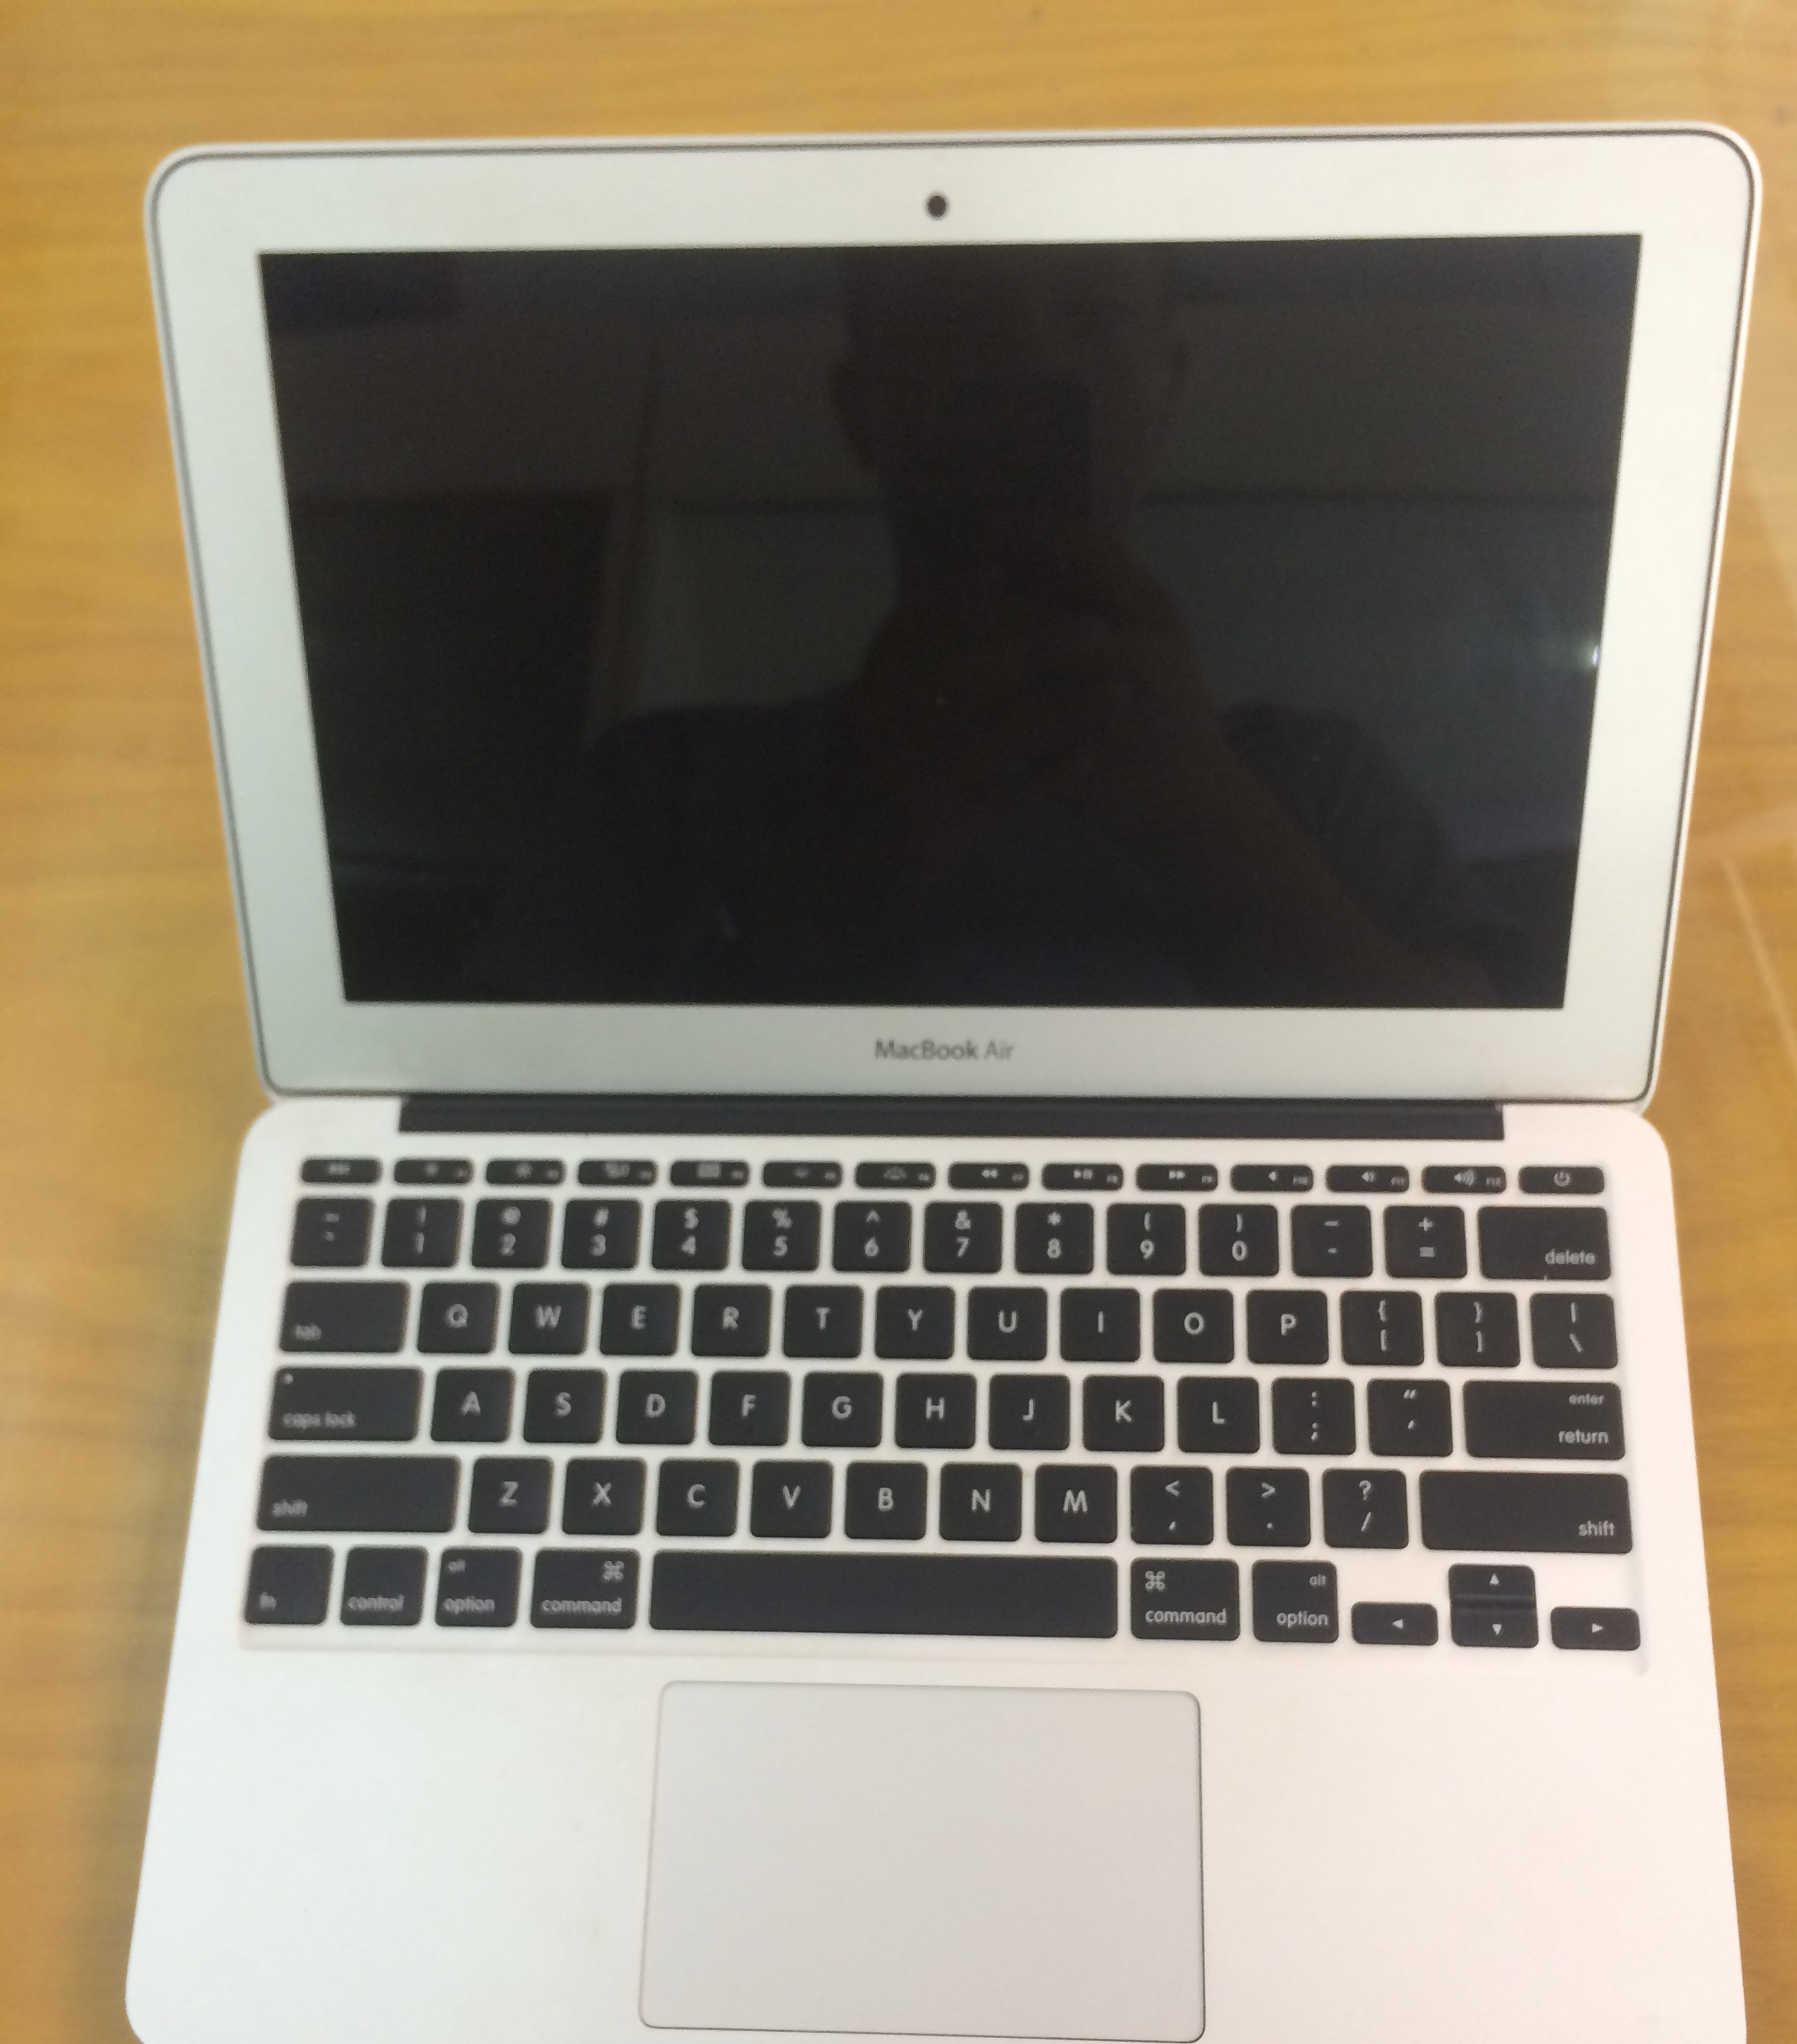 apple md223 macbook air